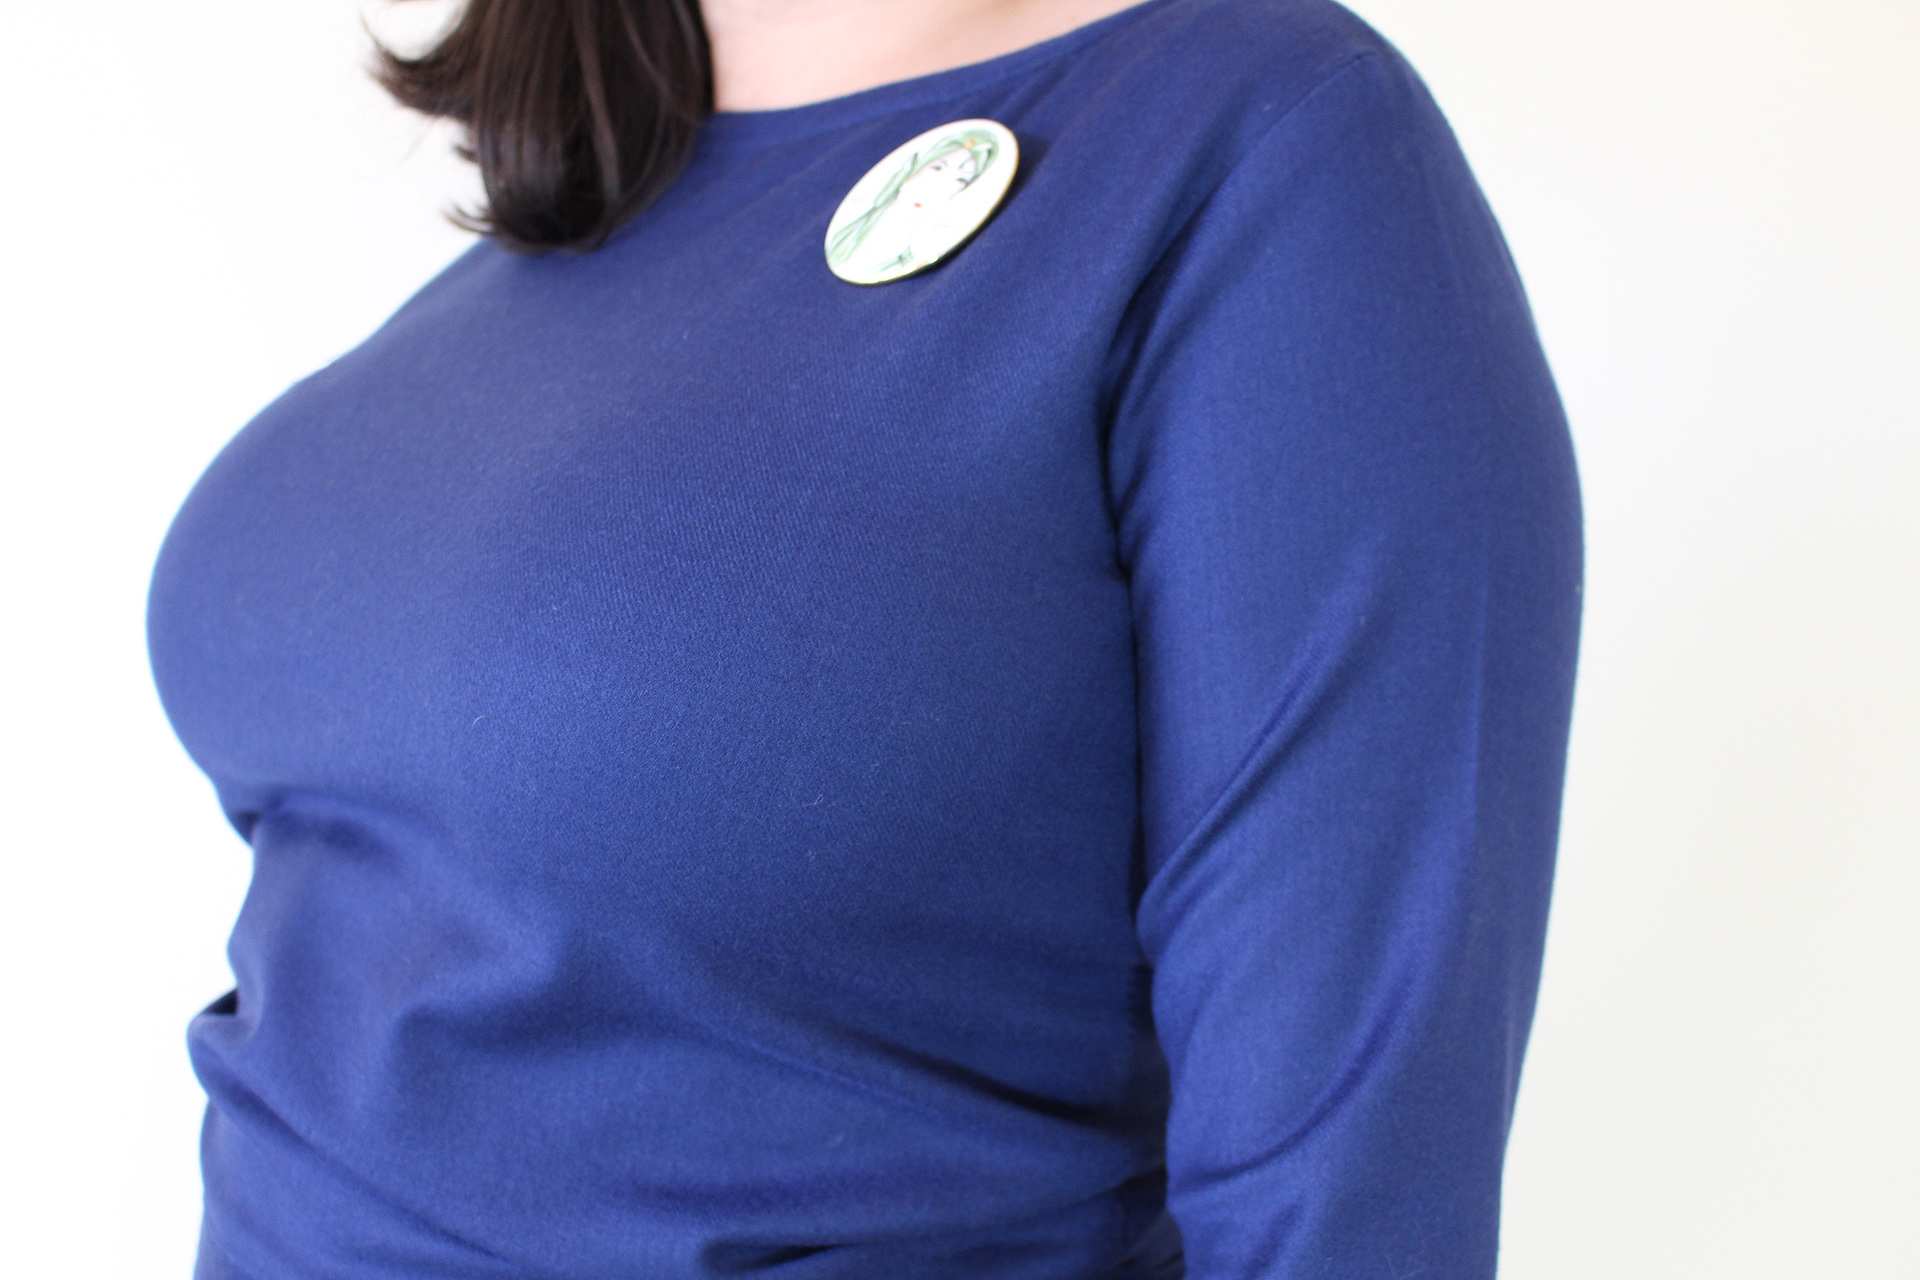 No Dart Full Bust Adjustment, Astoria Sweater, Britex Fabrics | Vintage on Tap